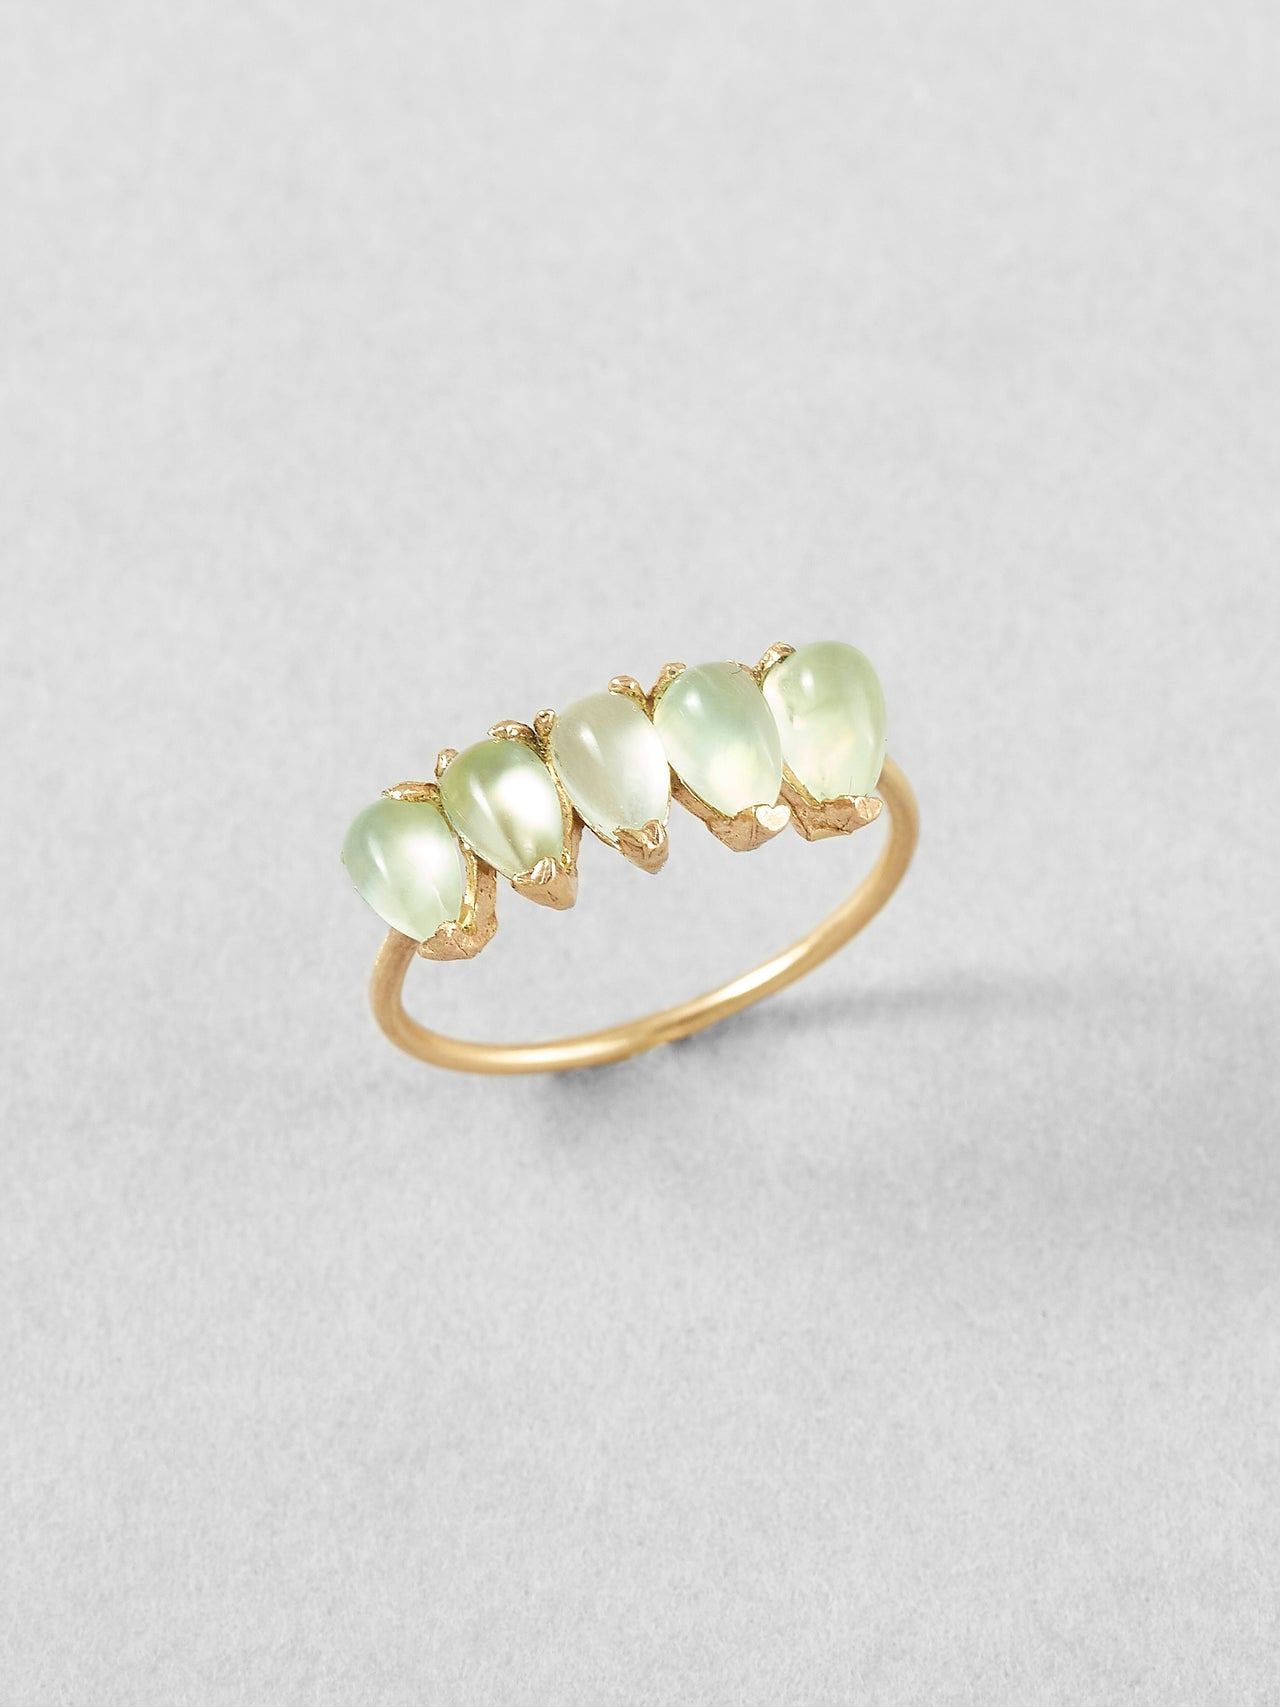 Prehnite Teardrop Ring